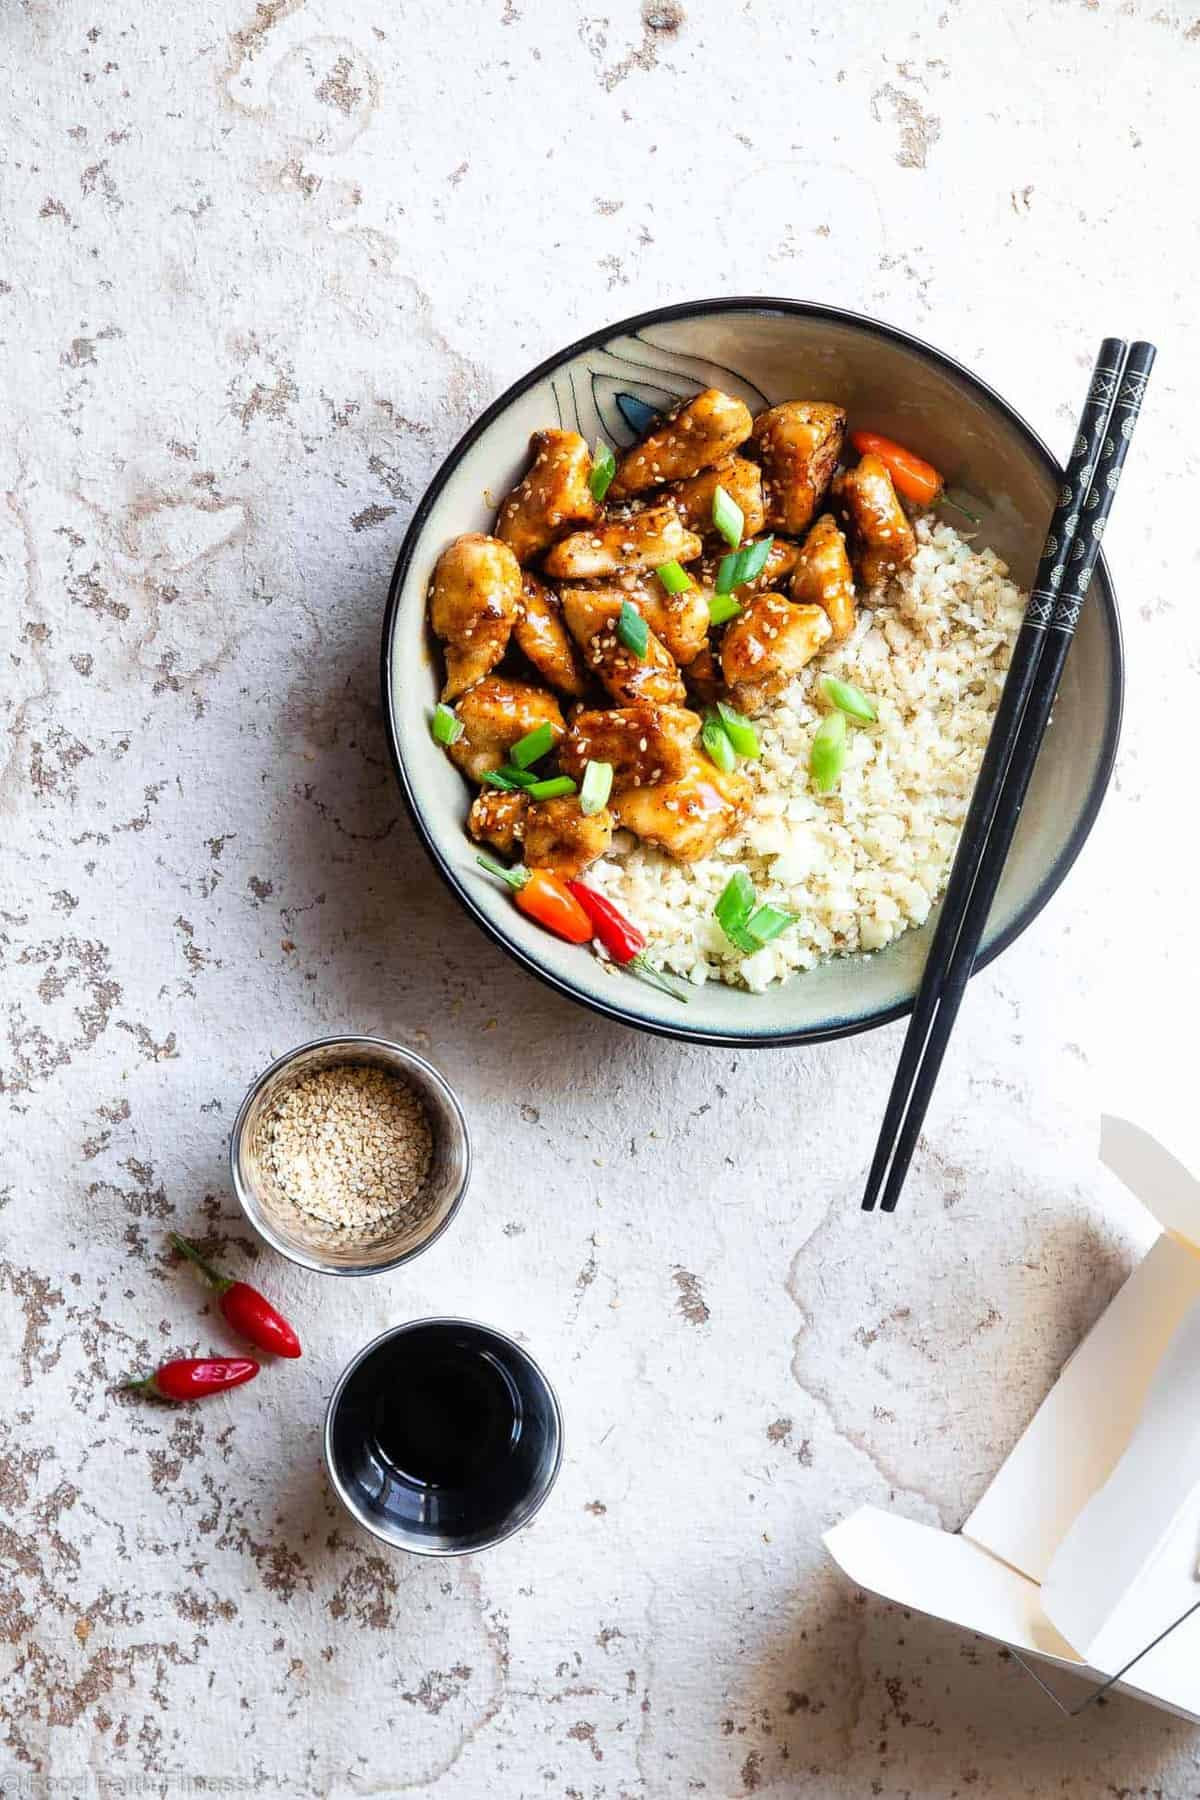 Paleo Easy Gluten Free Healthy Sesame Chicken Recipe - This paleo friendly, and sugar/grain/dairy and gluten free CRISPY easy Sesame Chicken tastes just like takeout but is SO much better for you! A quick dinner that the whole family will love! | #Foodfaithfitness | #Glutenfree #Paleo #Whole30 #Sugarfree #Healthy